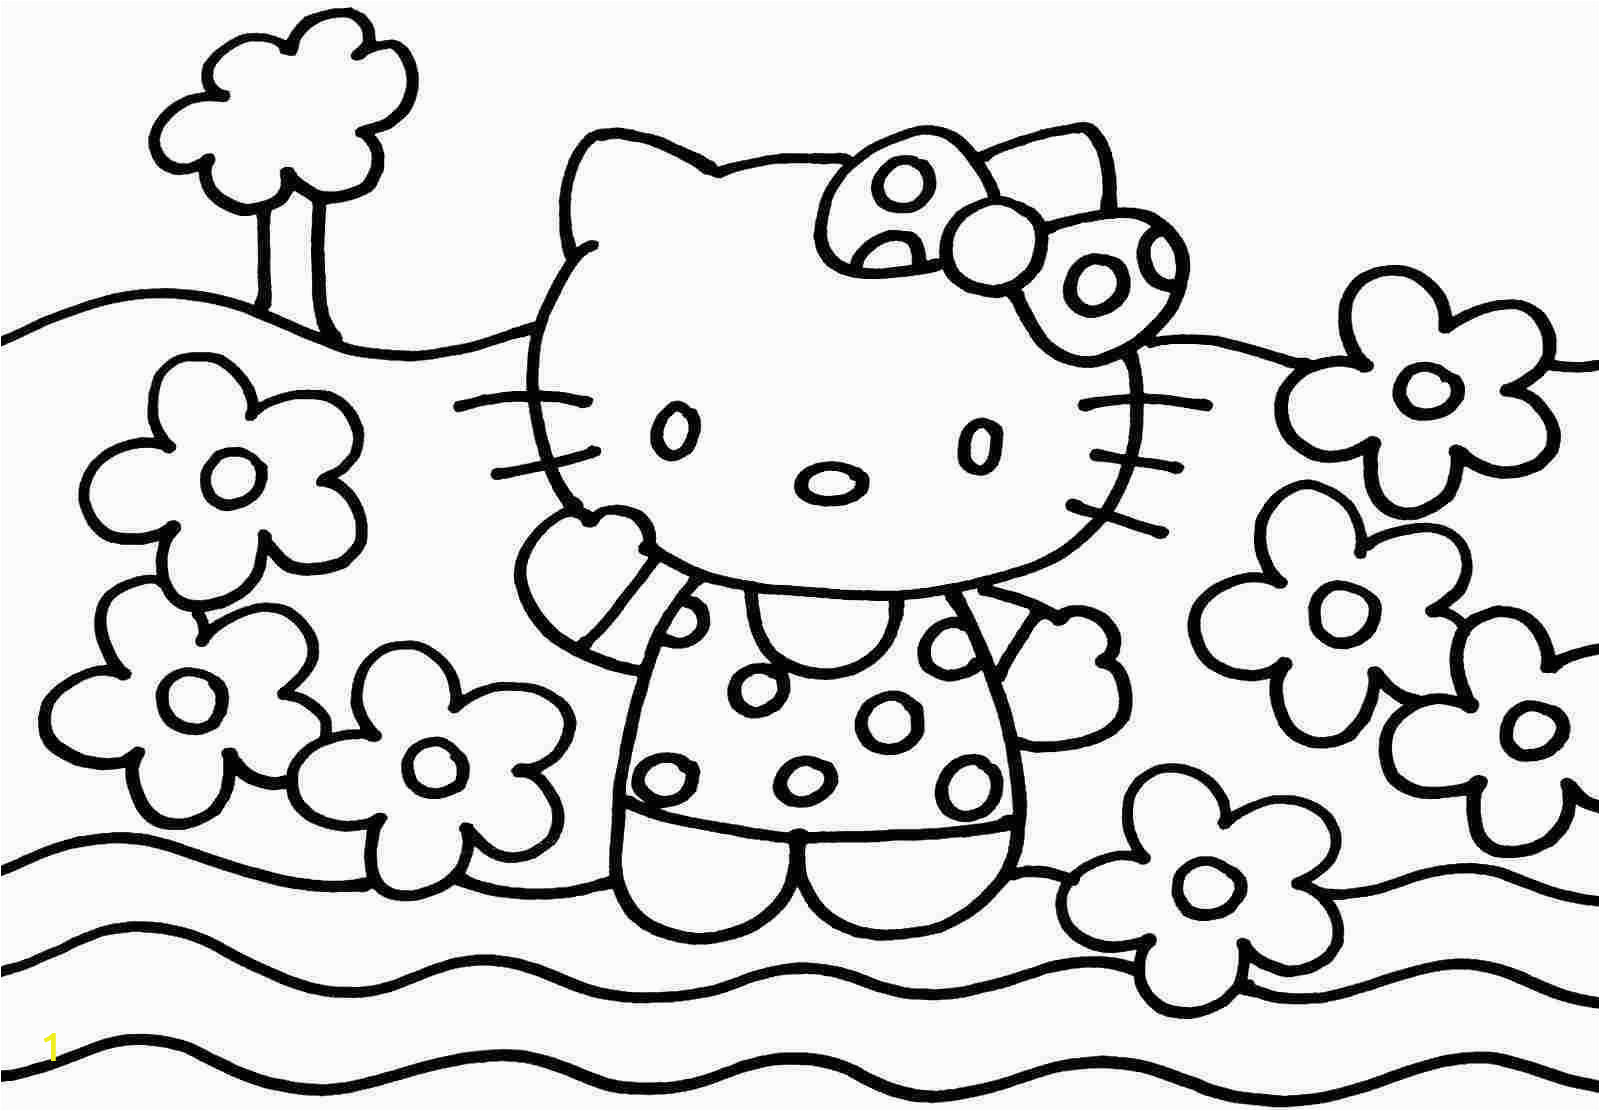 coloring mermaid hello kitty free coloring pages printable pictures to color kids coloring mermaid hello kitty